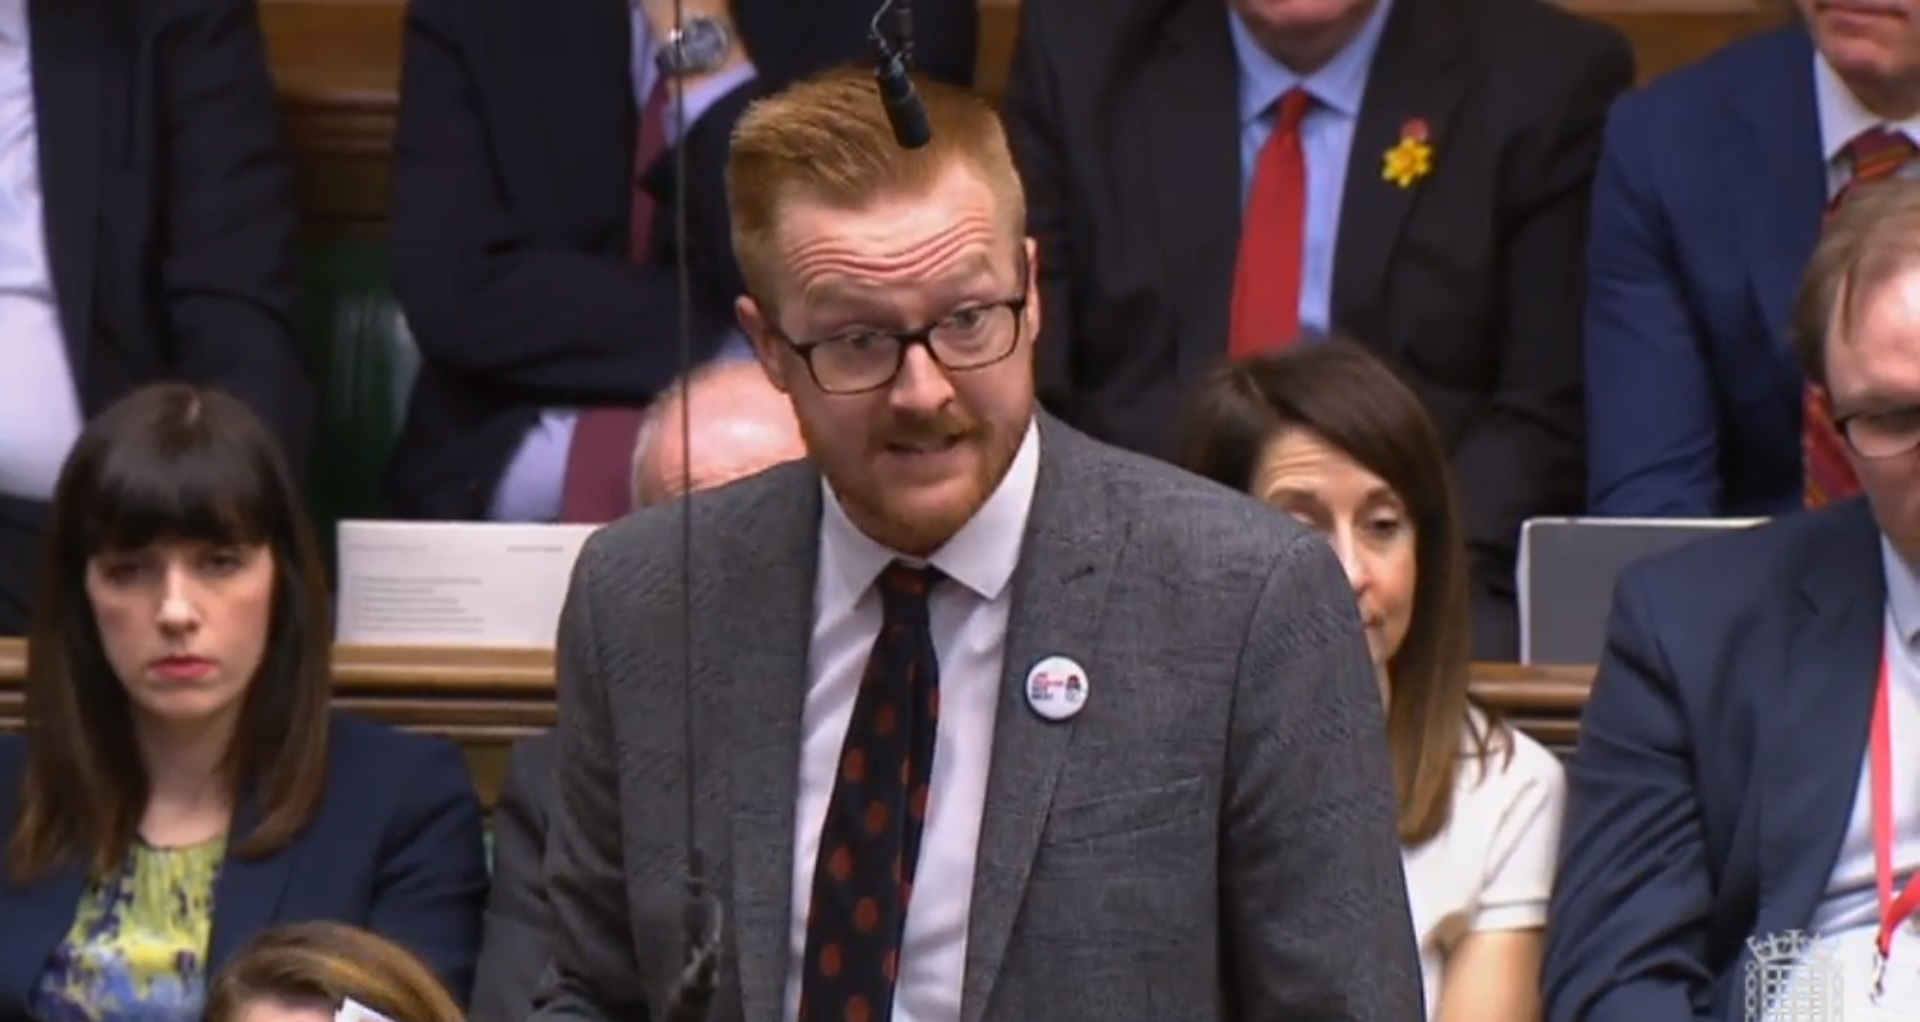 Lloyd Russell-Moyle wins re-election after going public about HIV status